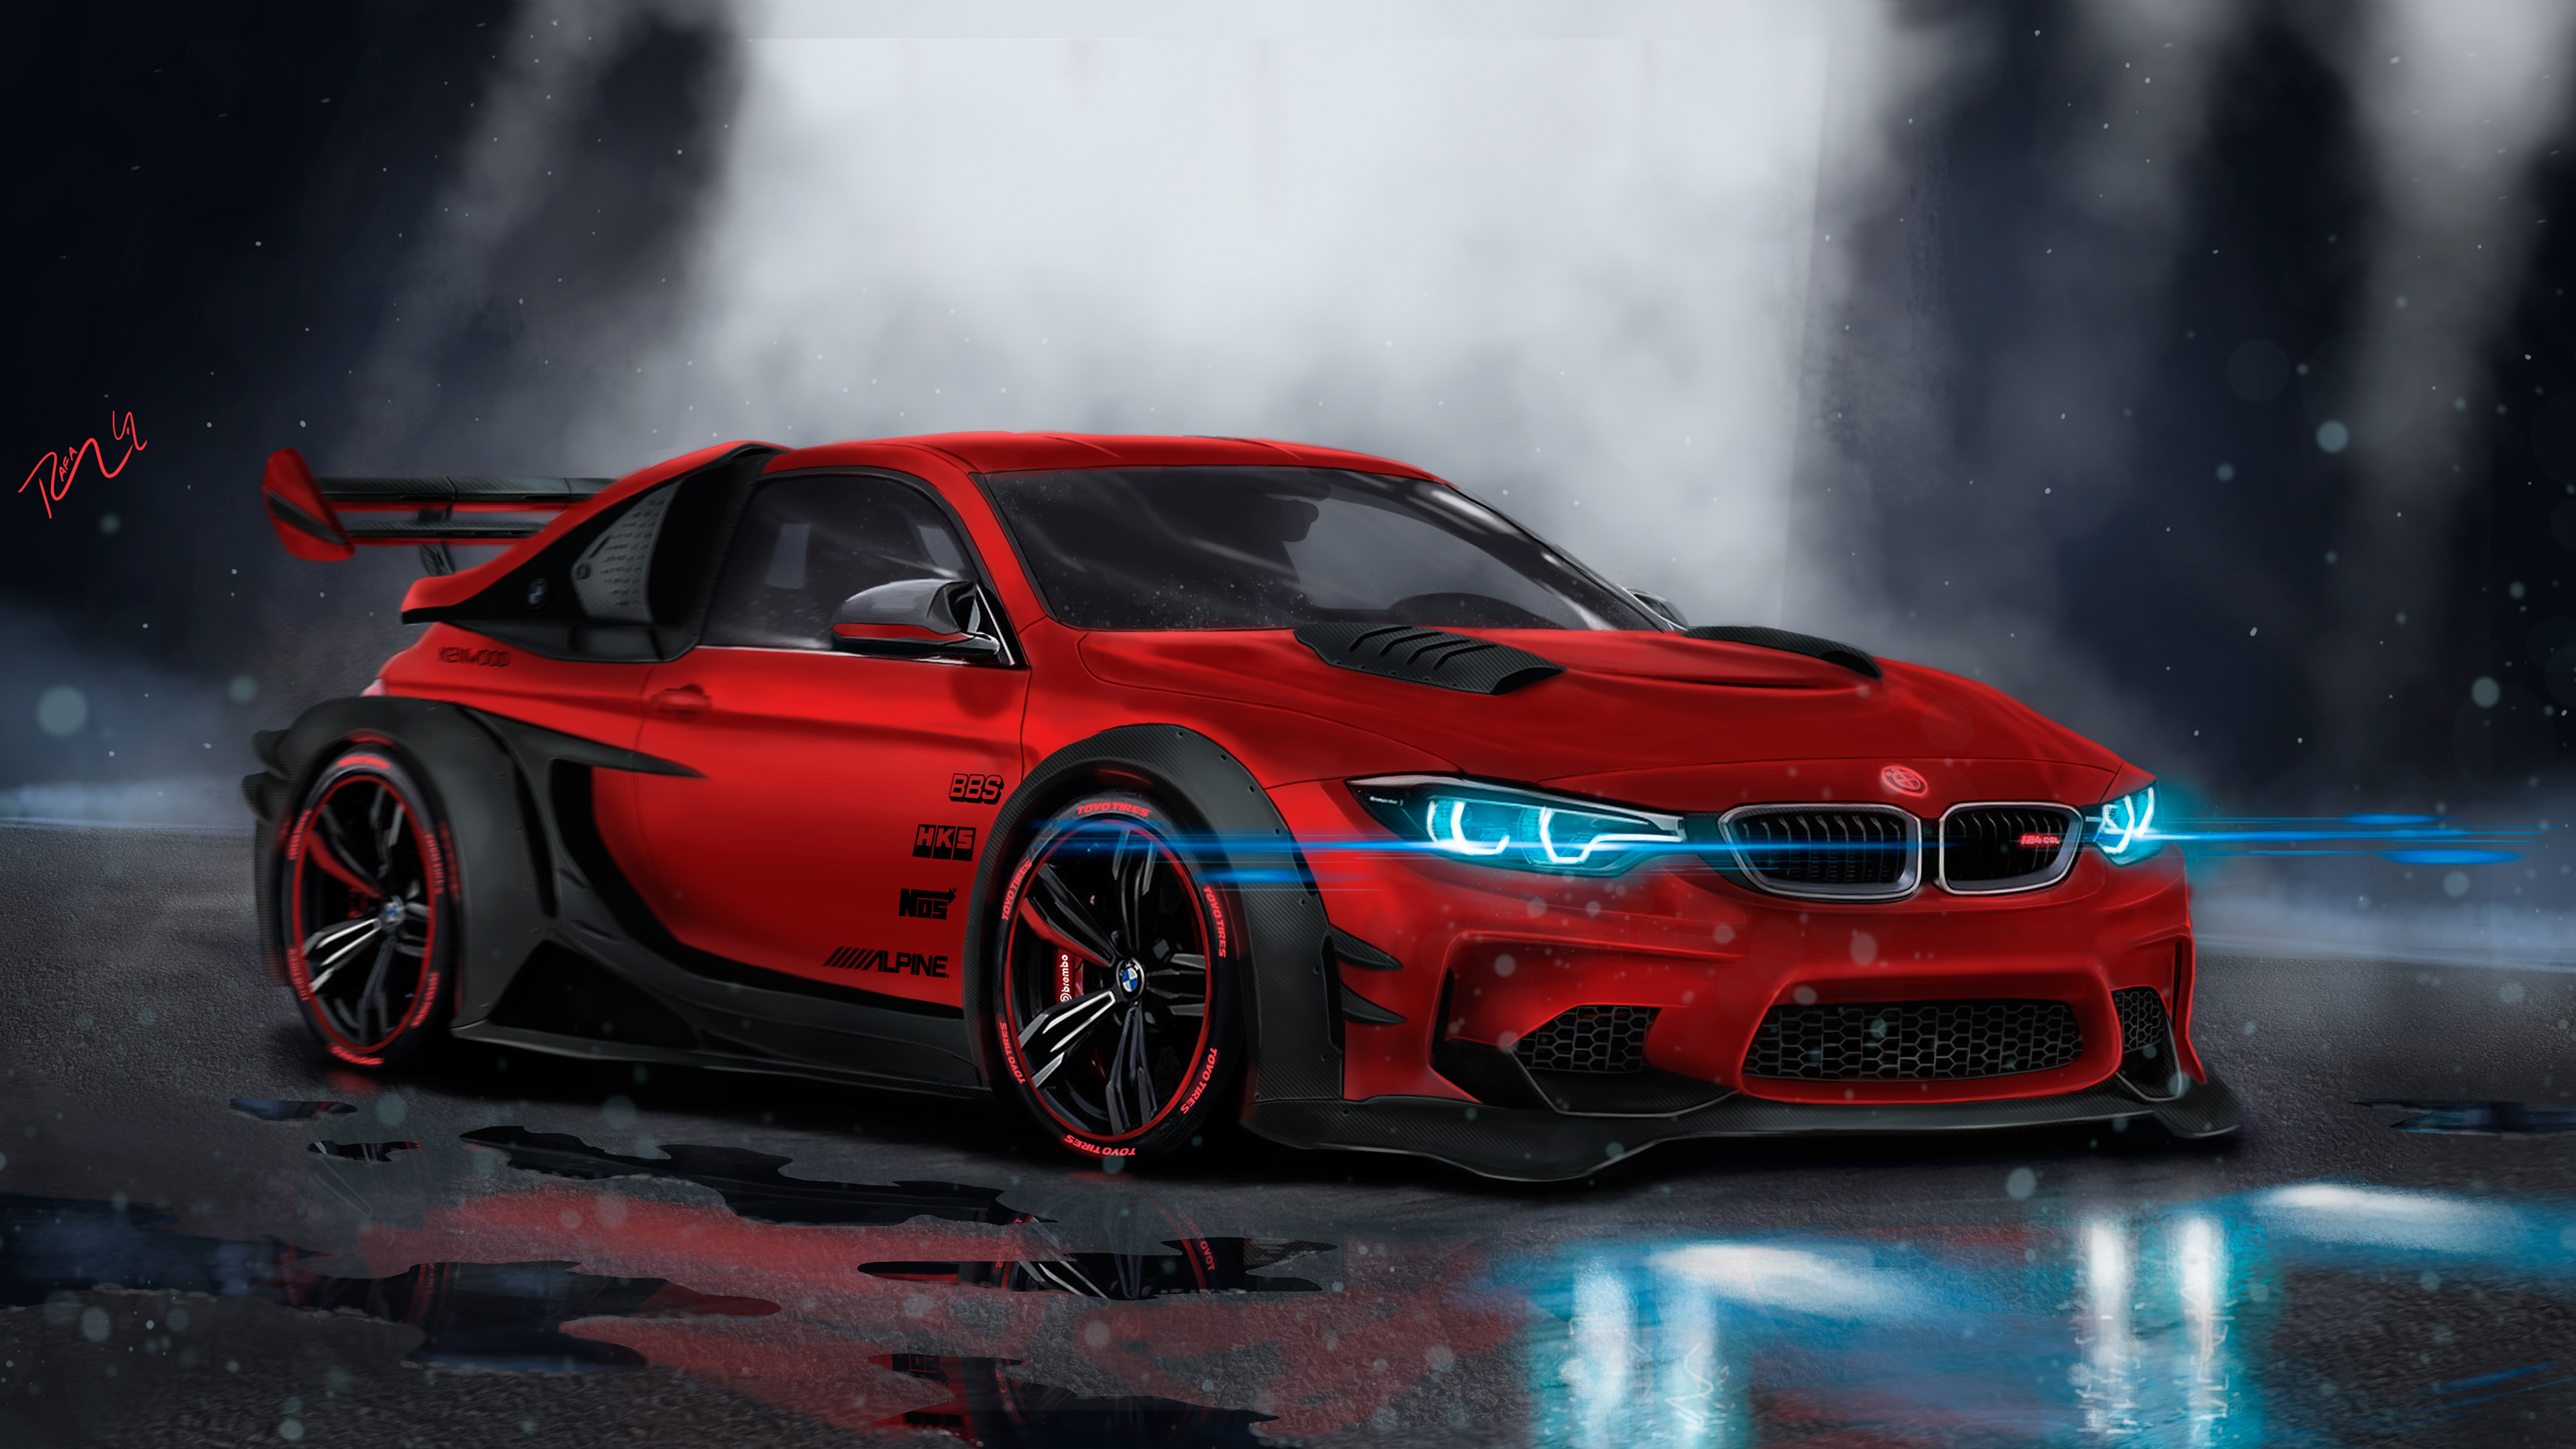 Bmw Supercar Concept Art 4k Wallpapers Hd Wallpapers